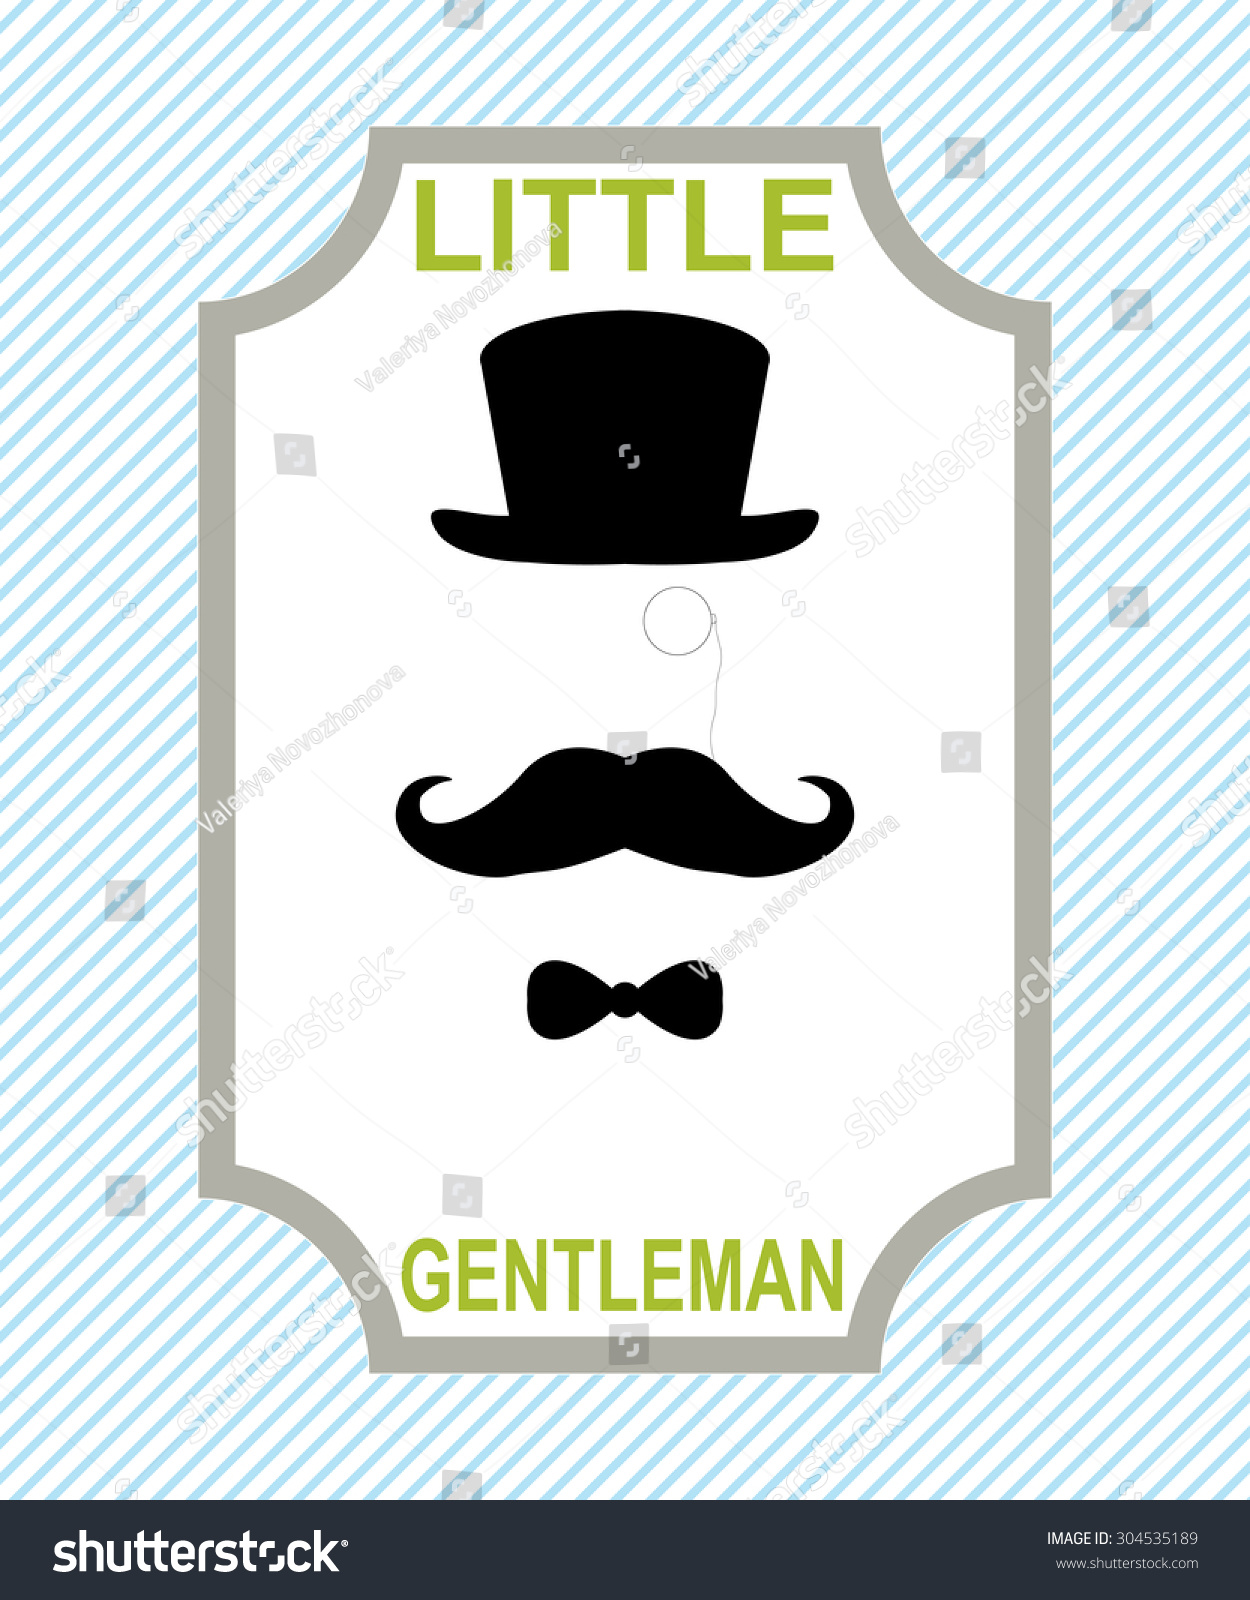 2143903f48b4b Baby Shower Template Little Gentleman Template Stock Vector (Royalty ...